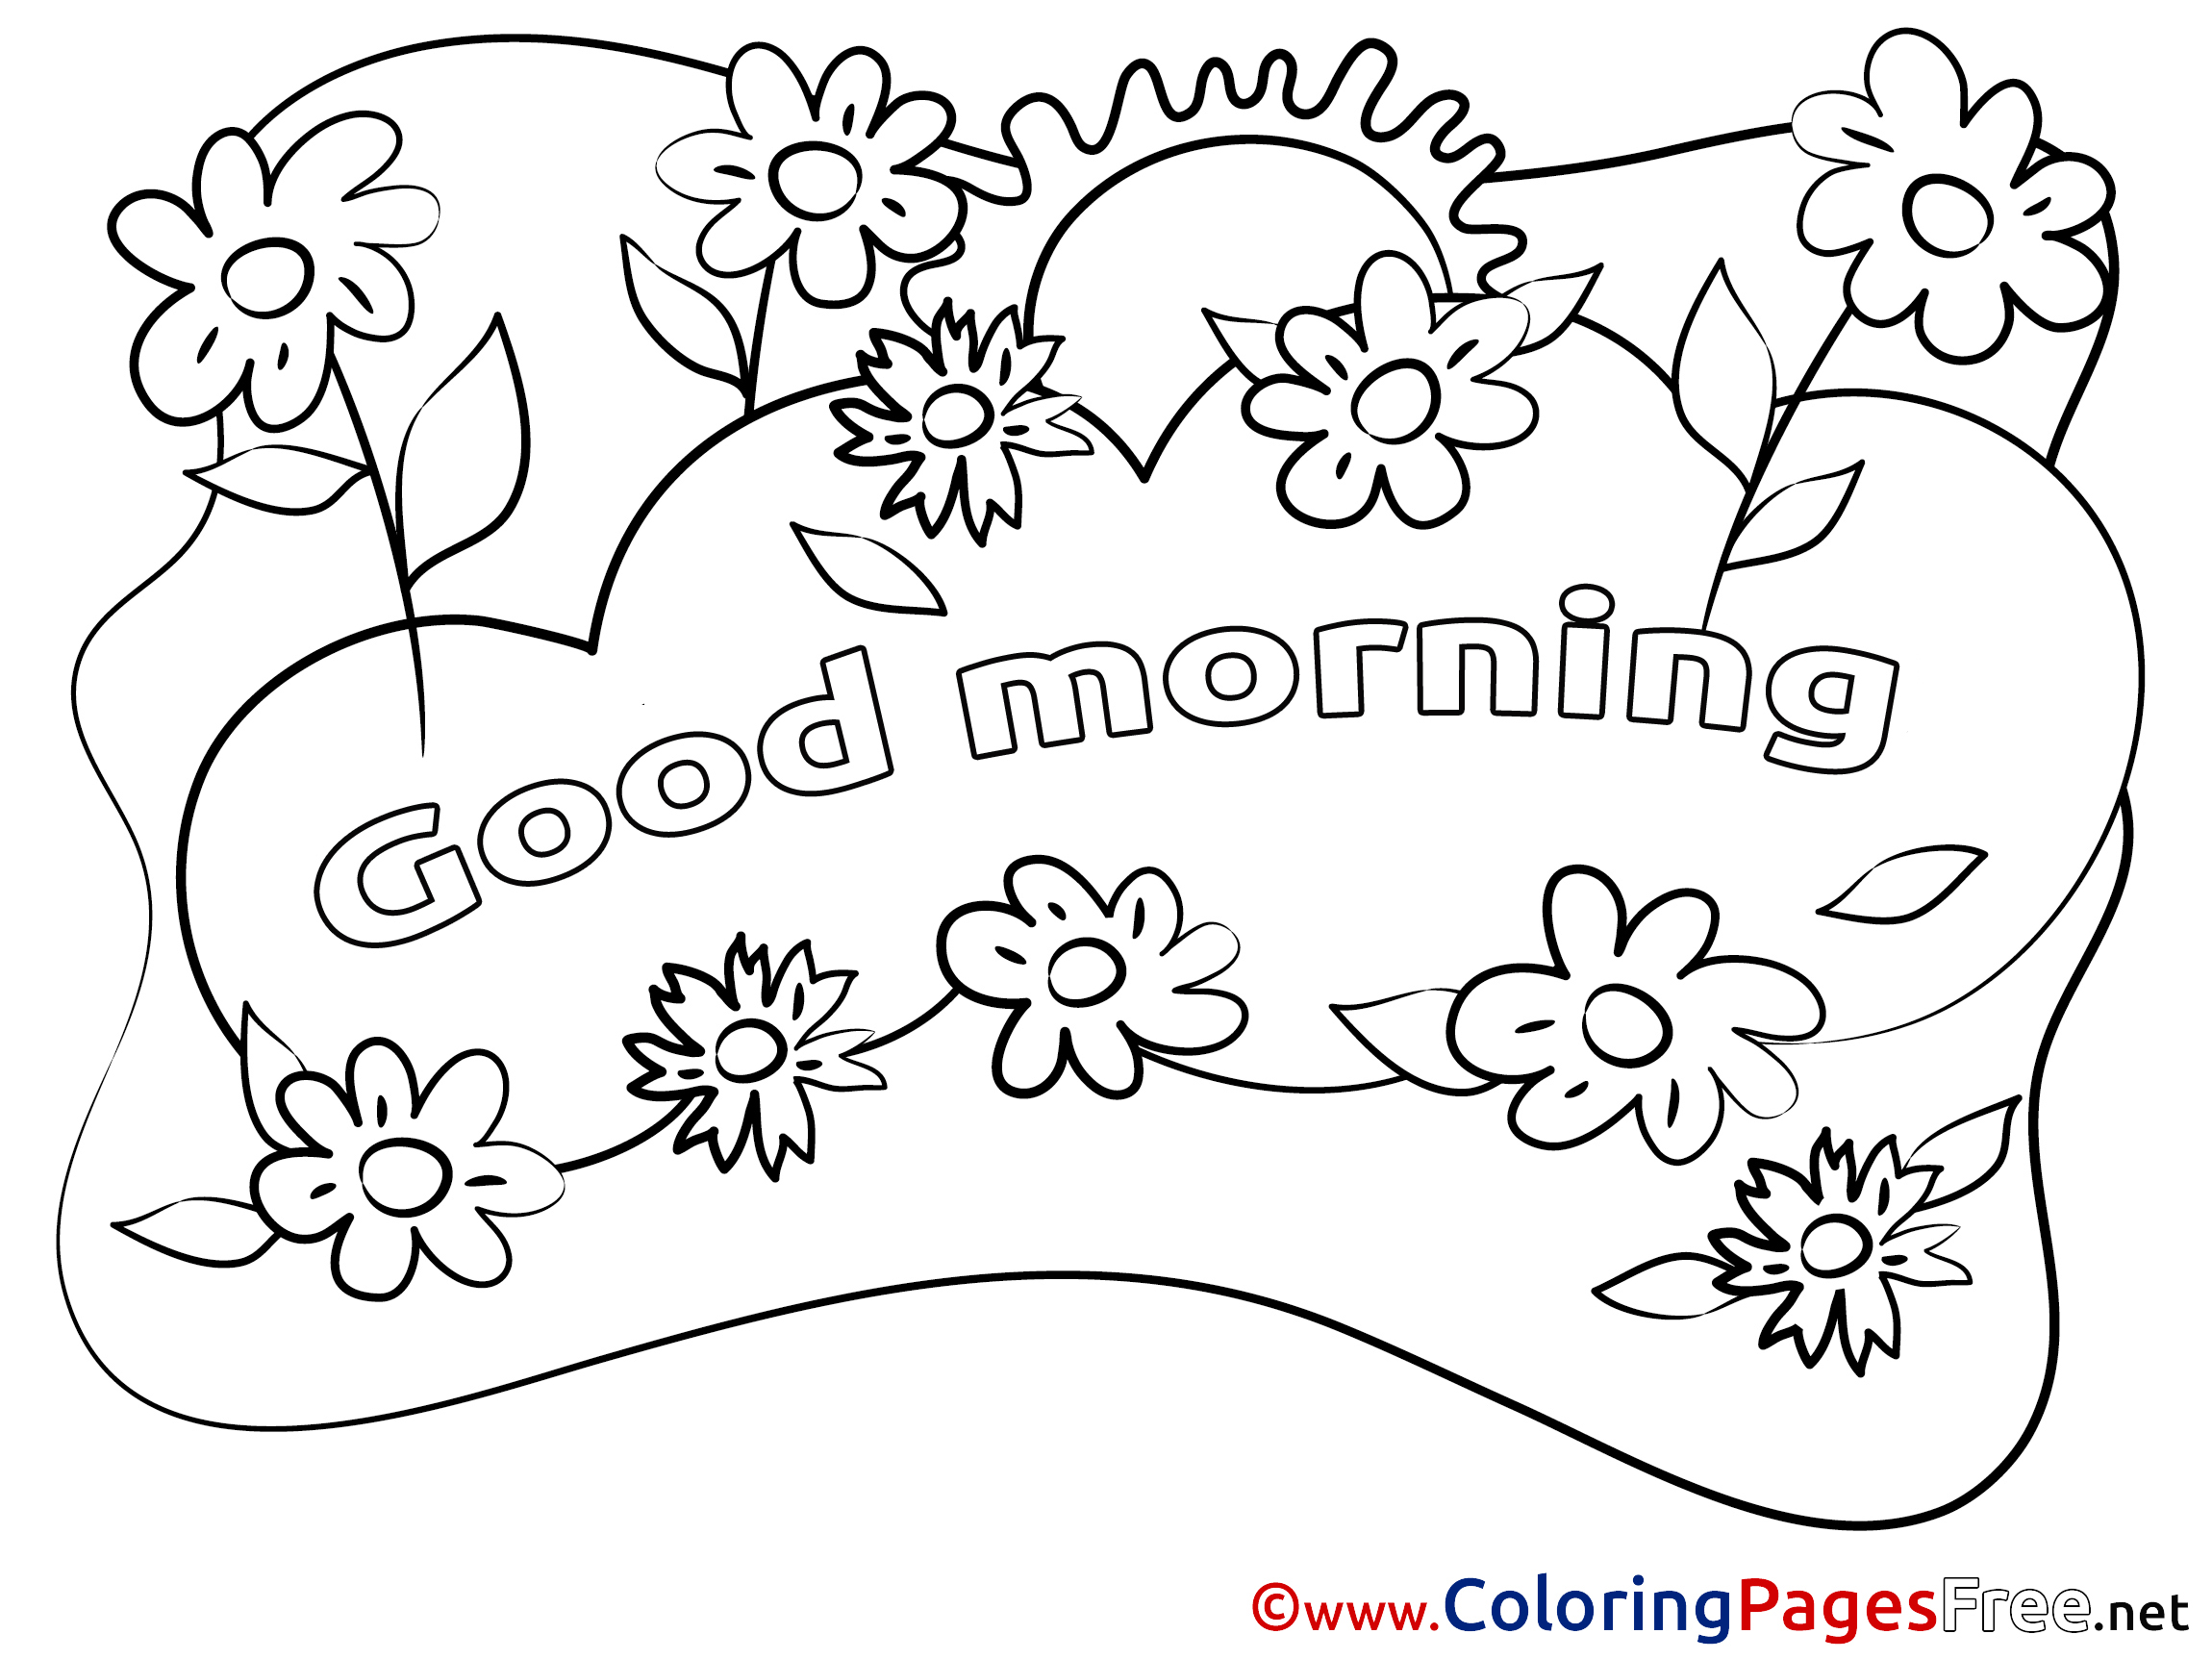 Good Morning Coloring Pages Sketch Coloring Page